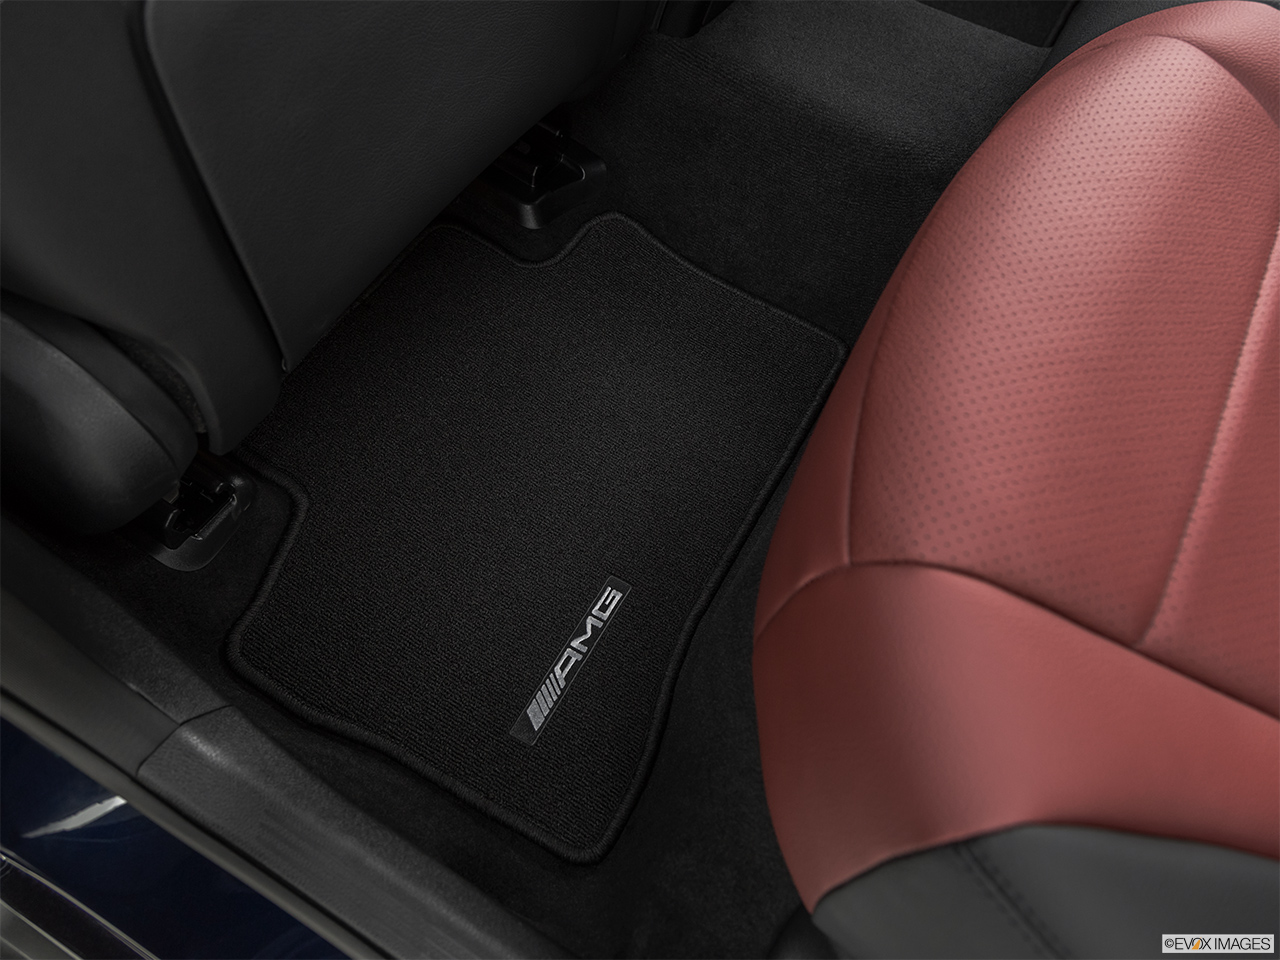 2019 Mercedes-Benz GLC-Class Coupe GLC 300 4MATIC Rear driver's side floor mat. Mid-seat level from outside looking in.